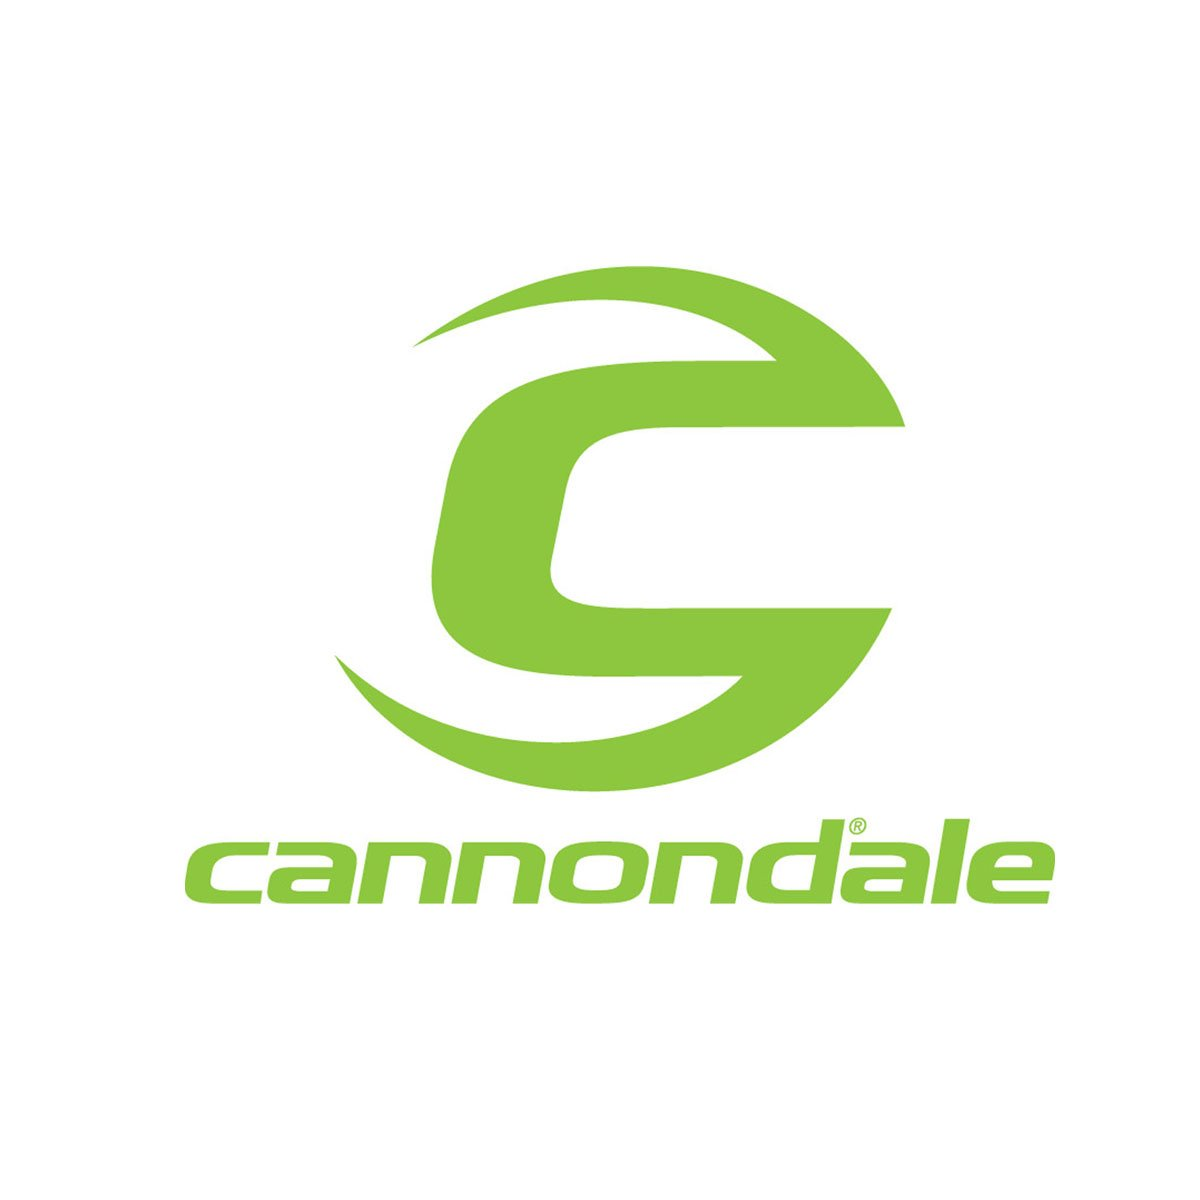 Cannondale 2017 12in Schrader Valve Bicycle Inner Tube - 1.5-2.1in - Box of 60 - CP8207U0002